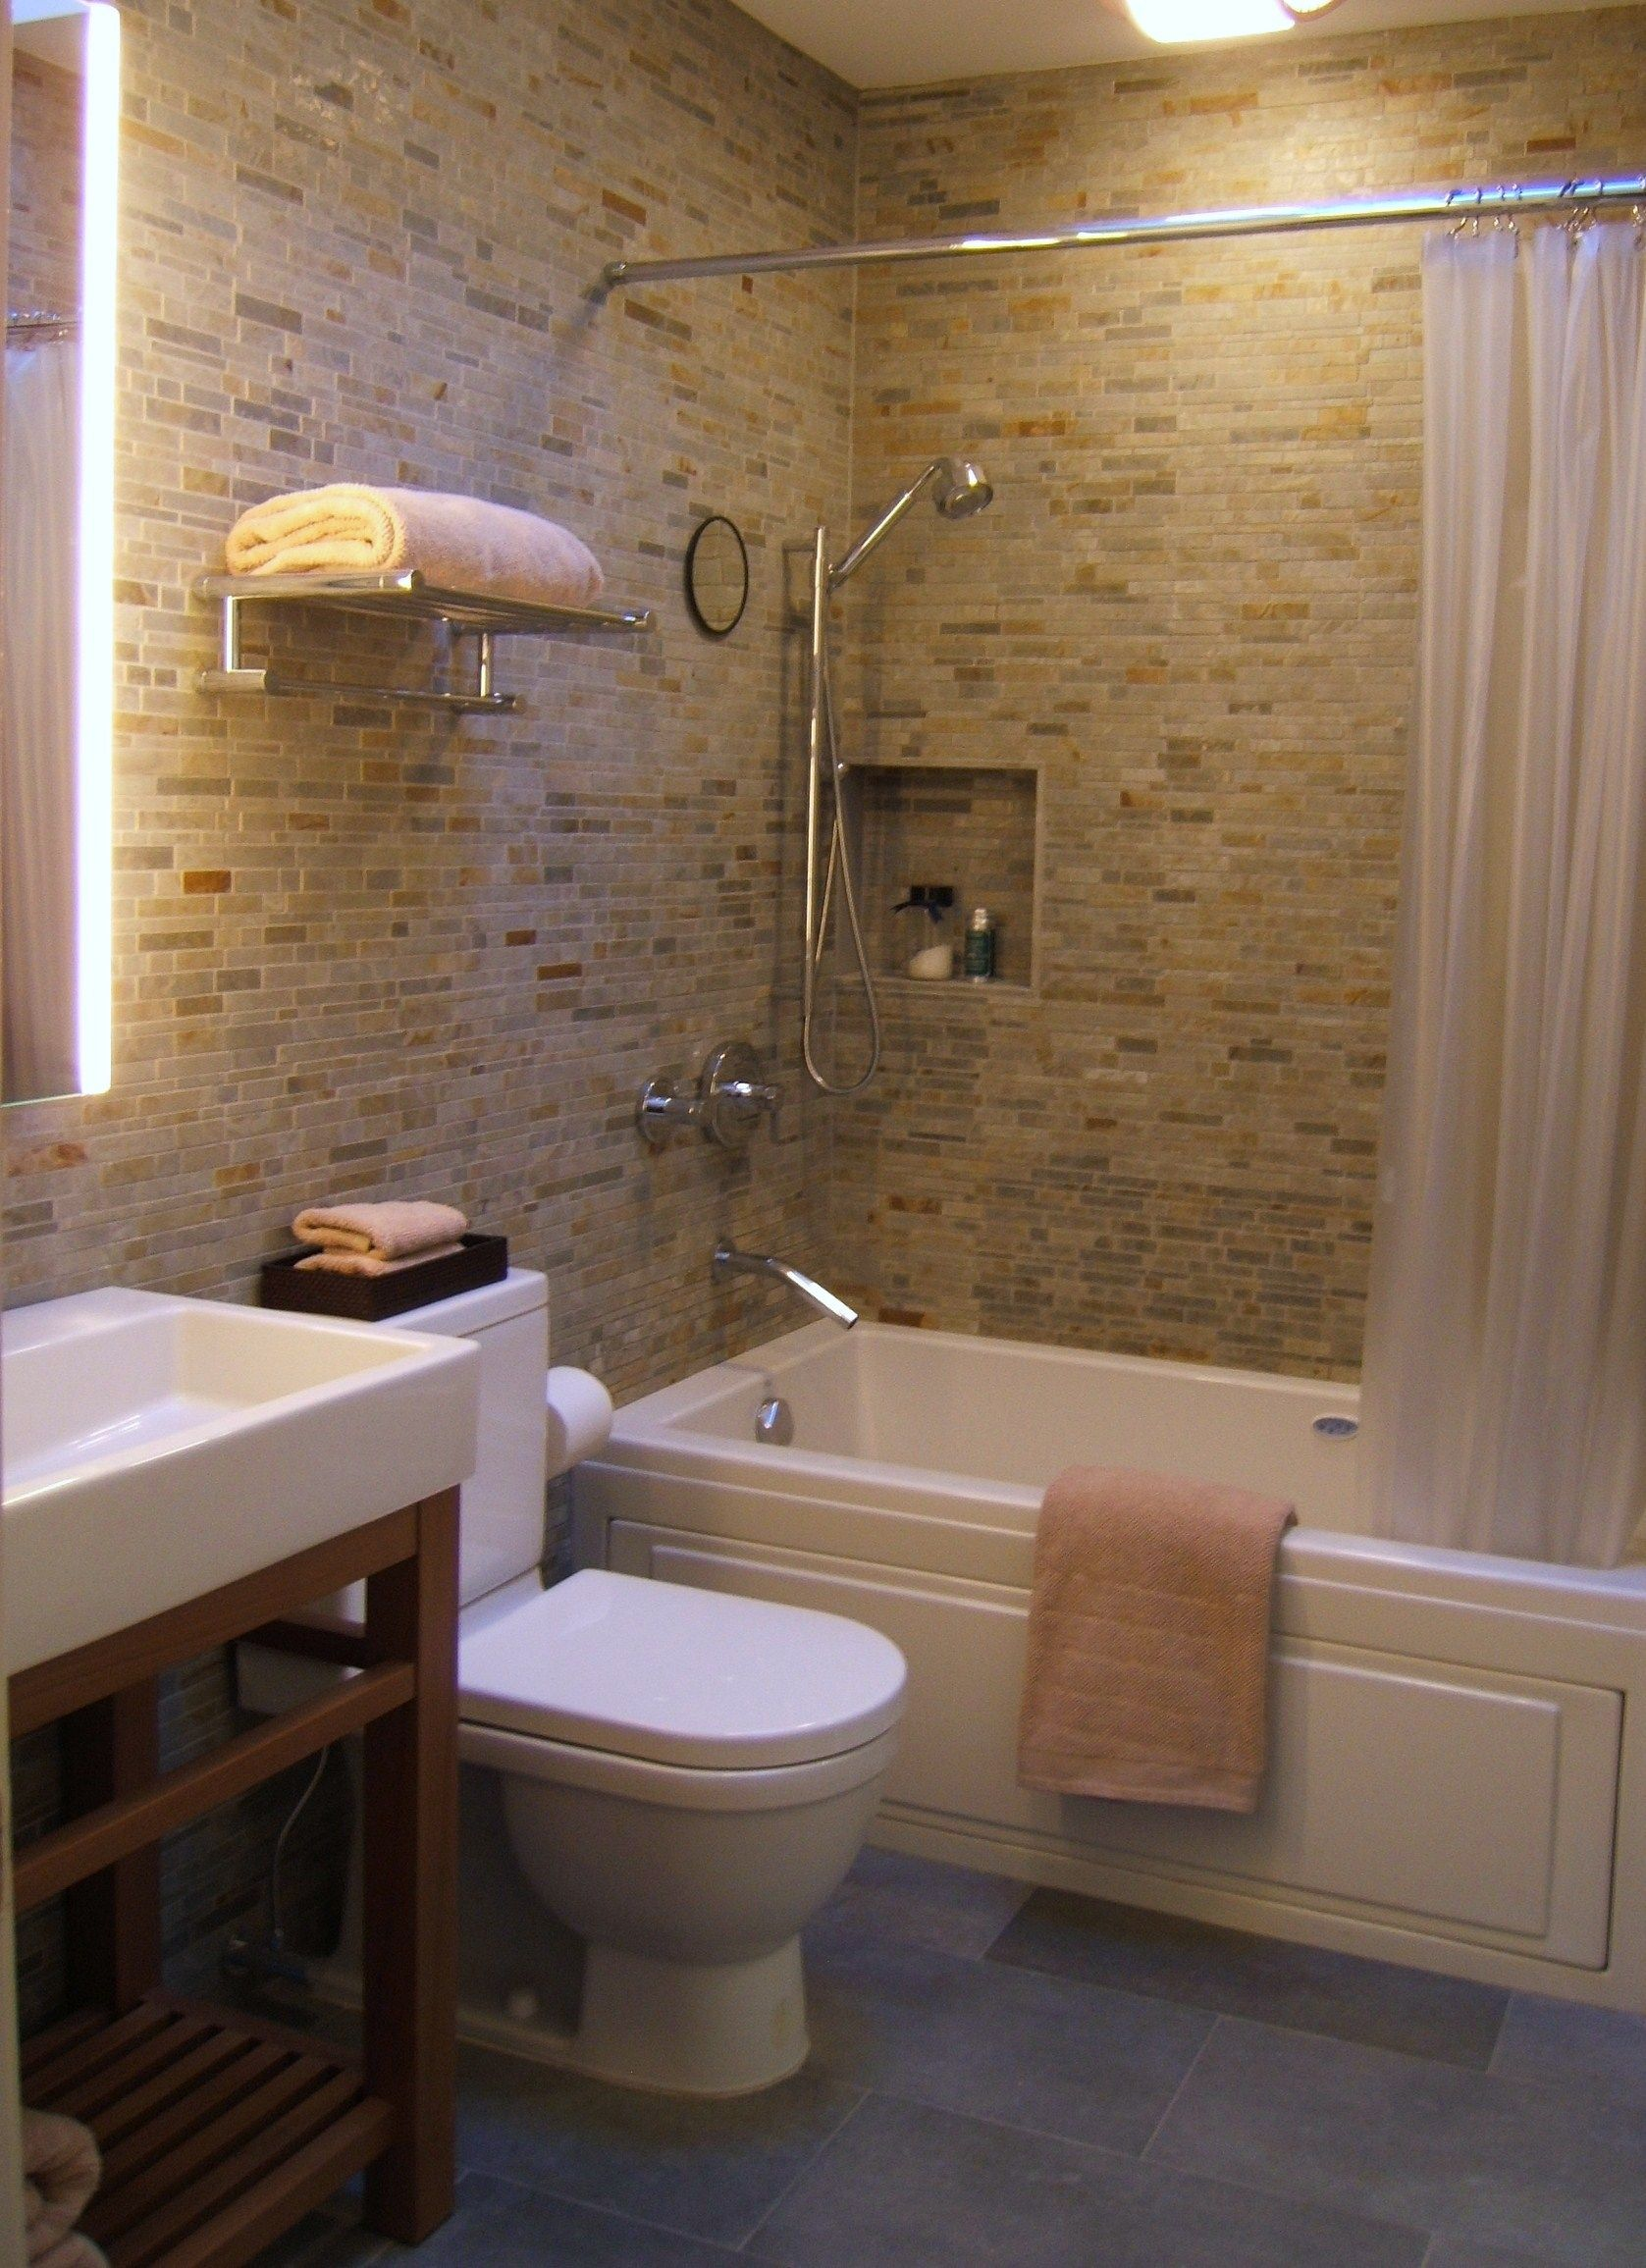 Small bathroom designs south africa small bath for Tiny bathroom design ideas